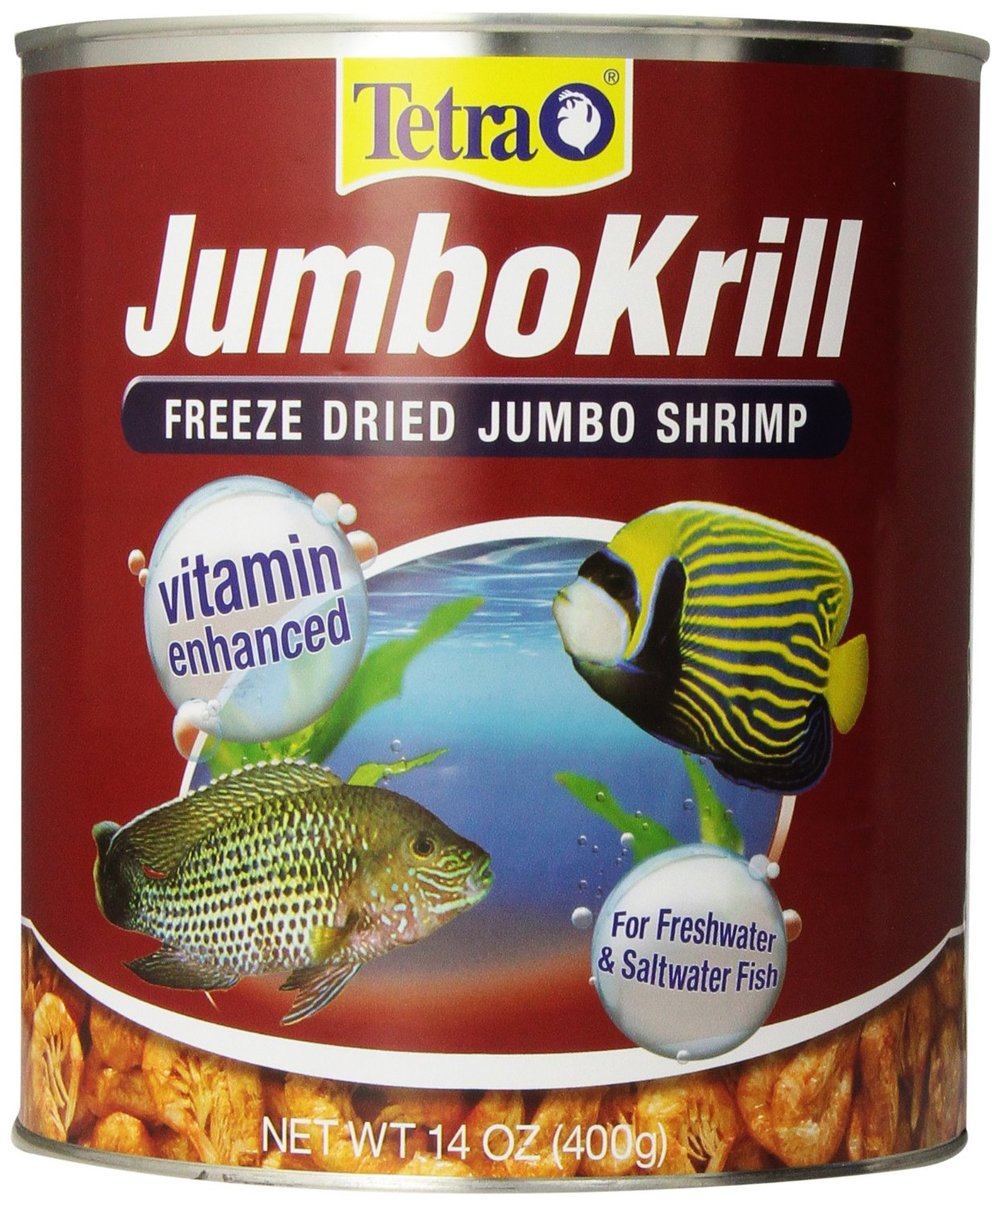 Freshwater aquarium fish vitamins - Tetra Jumbokrill Freeze Dried Jumbo Shrimp